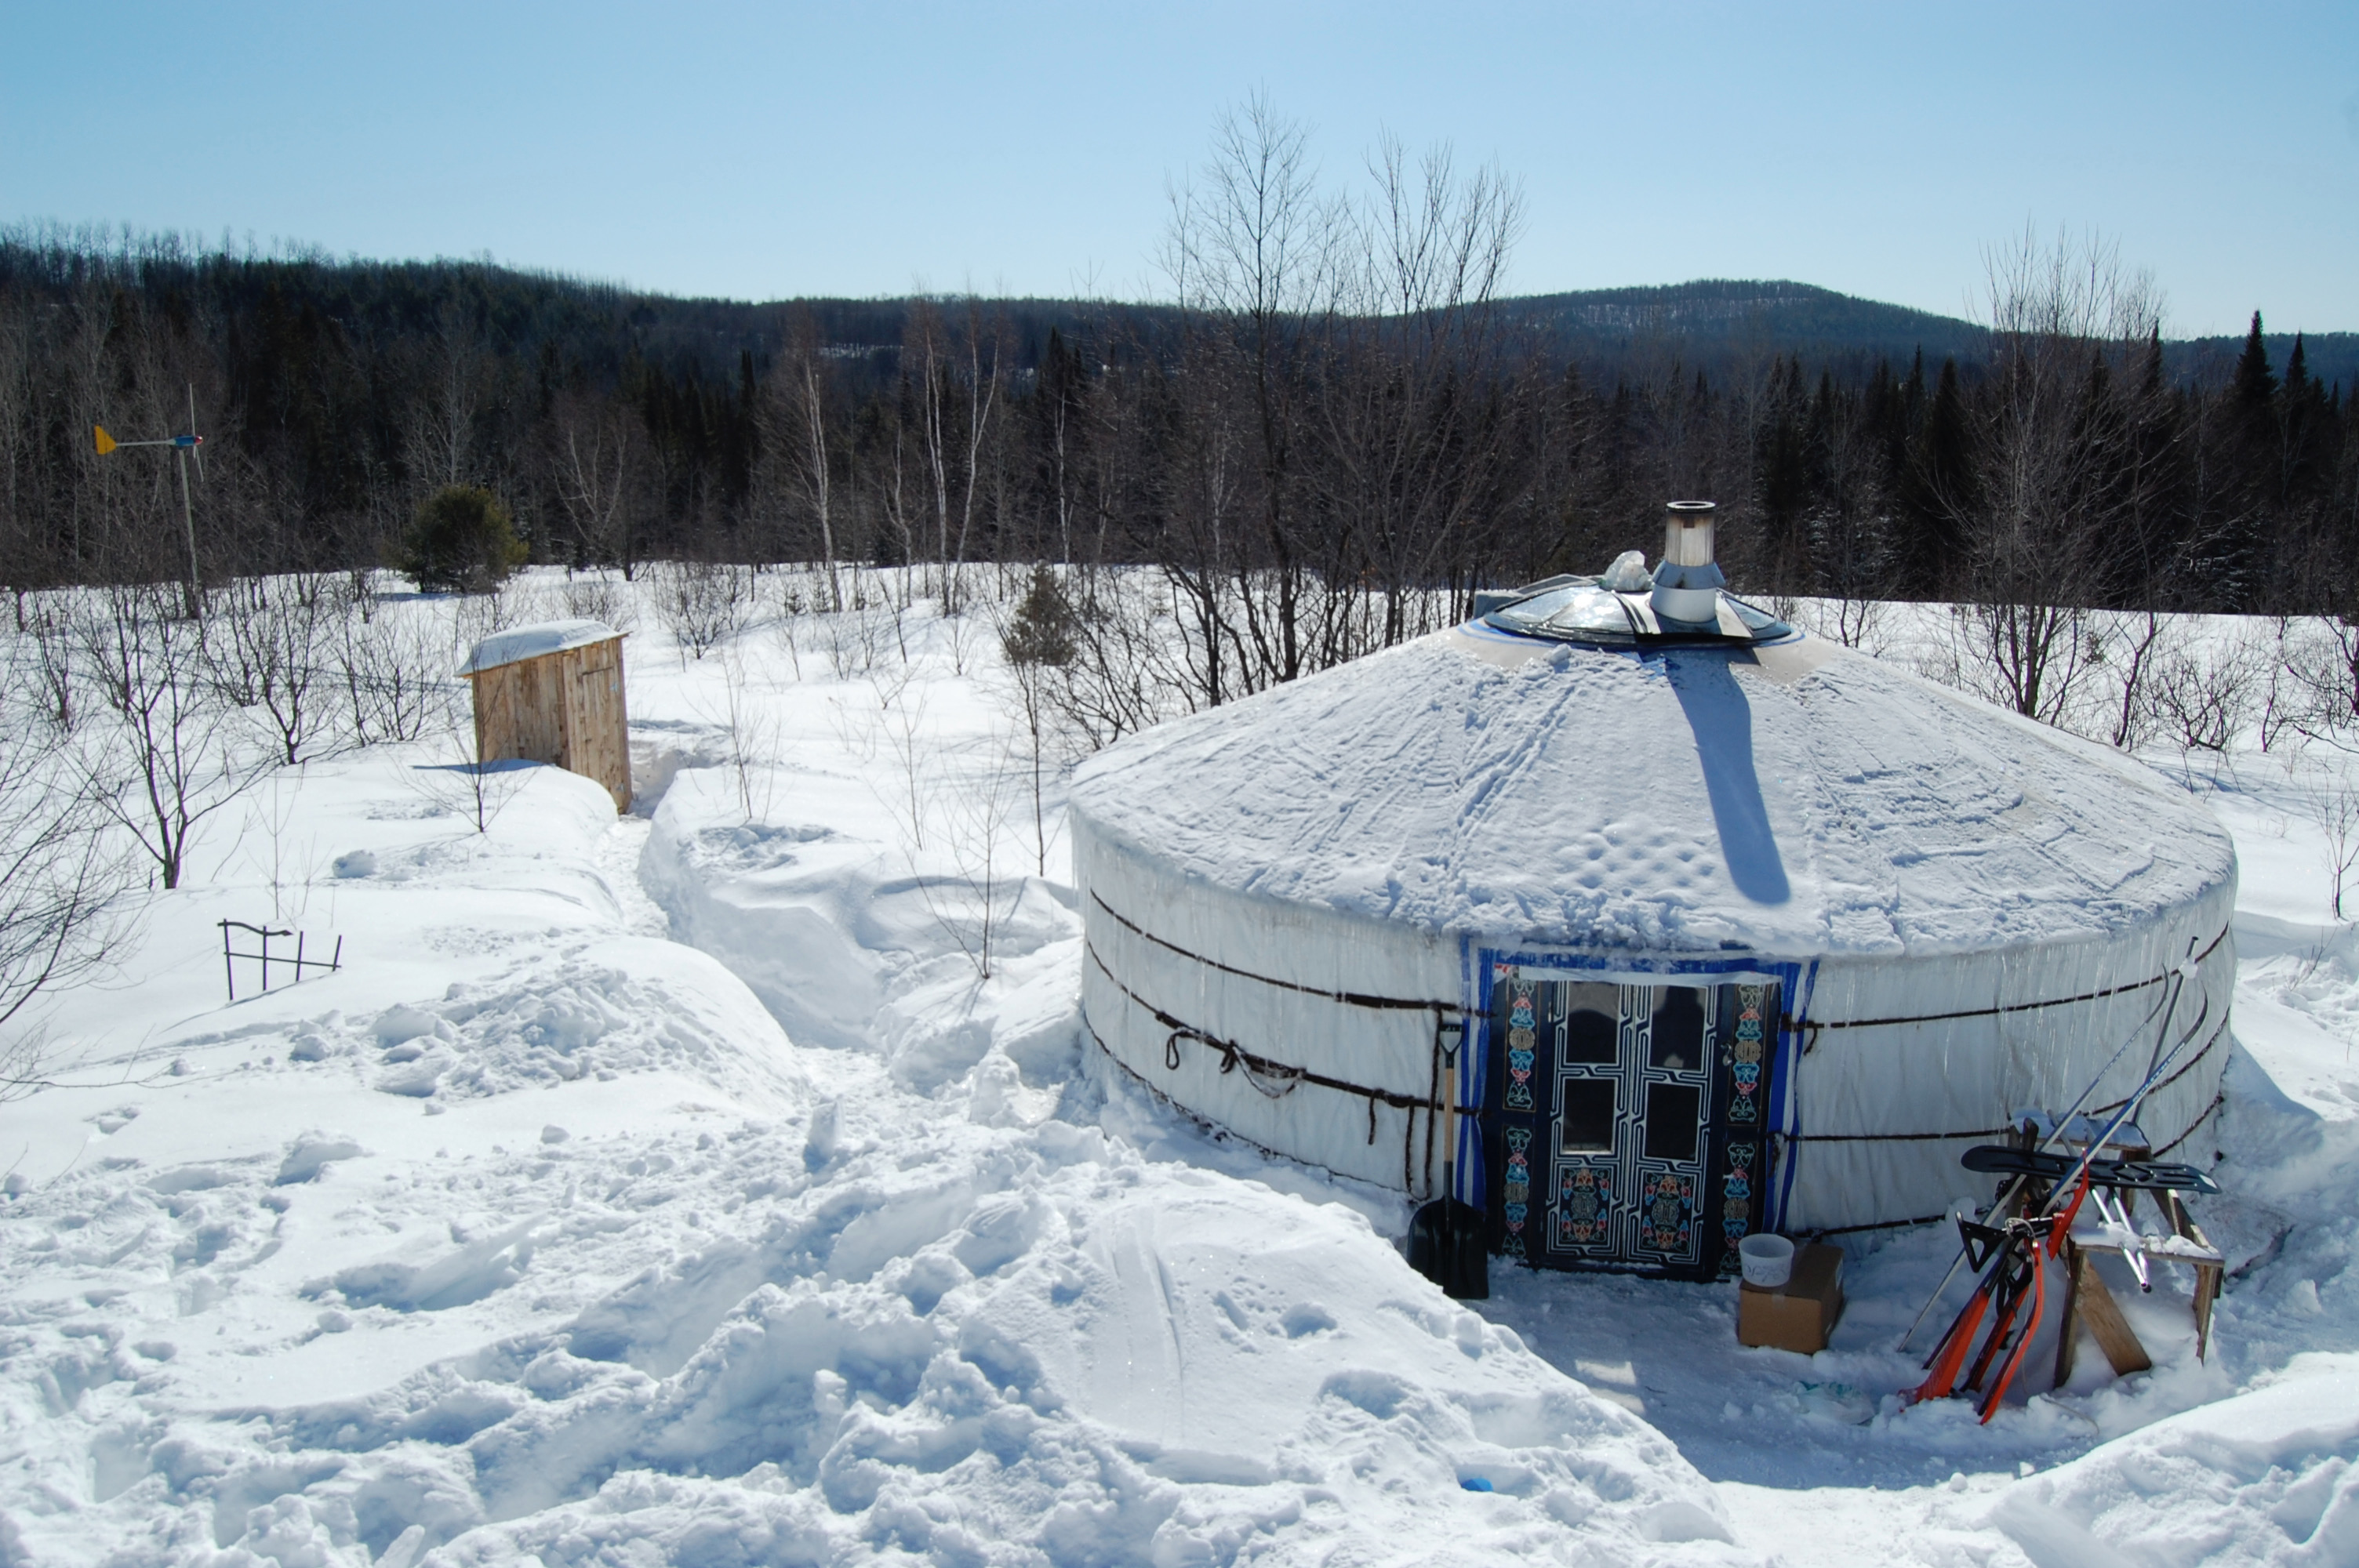 Groovy Yurt in the winter time